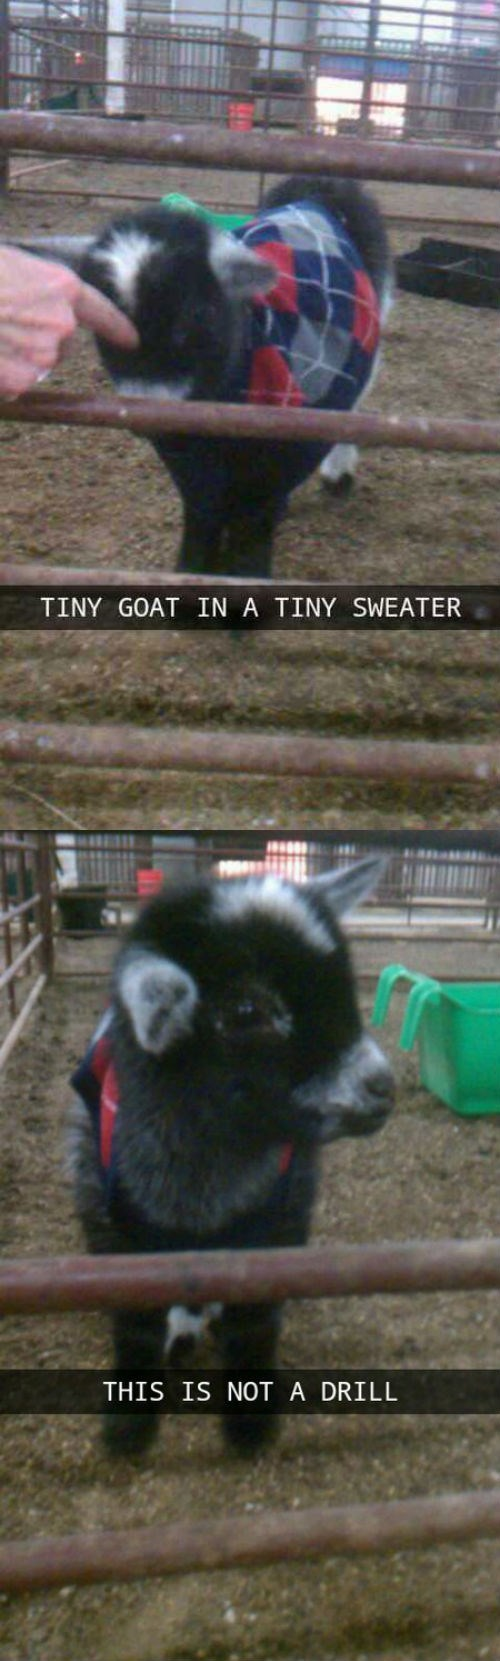 goat,baby goat,sweater,animals,g rated,poorly dressed